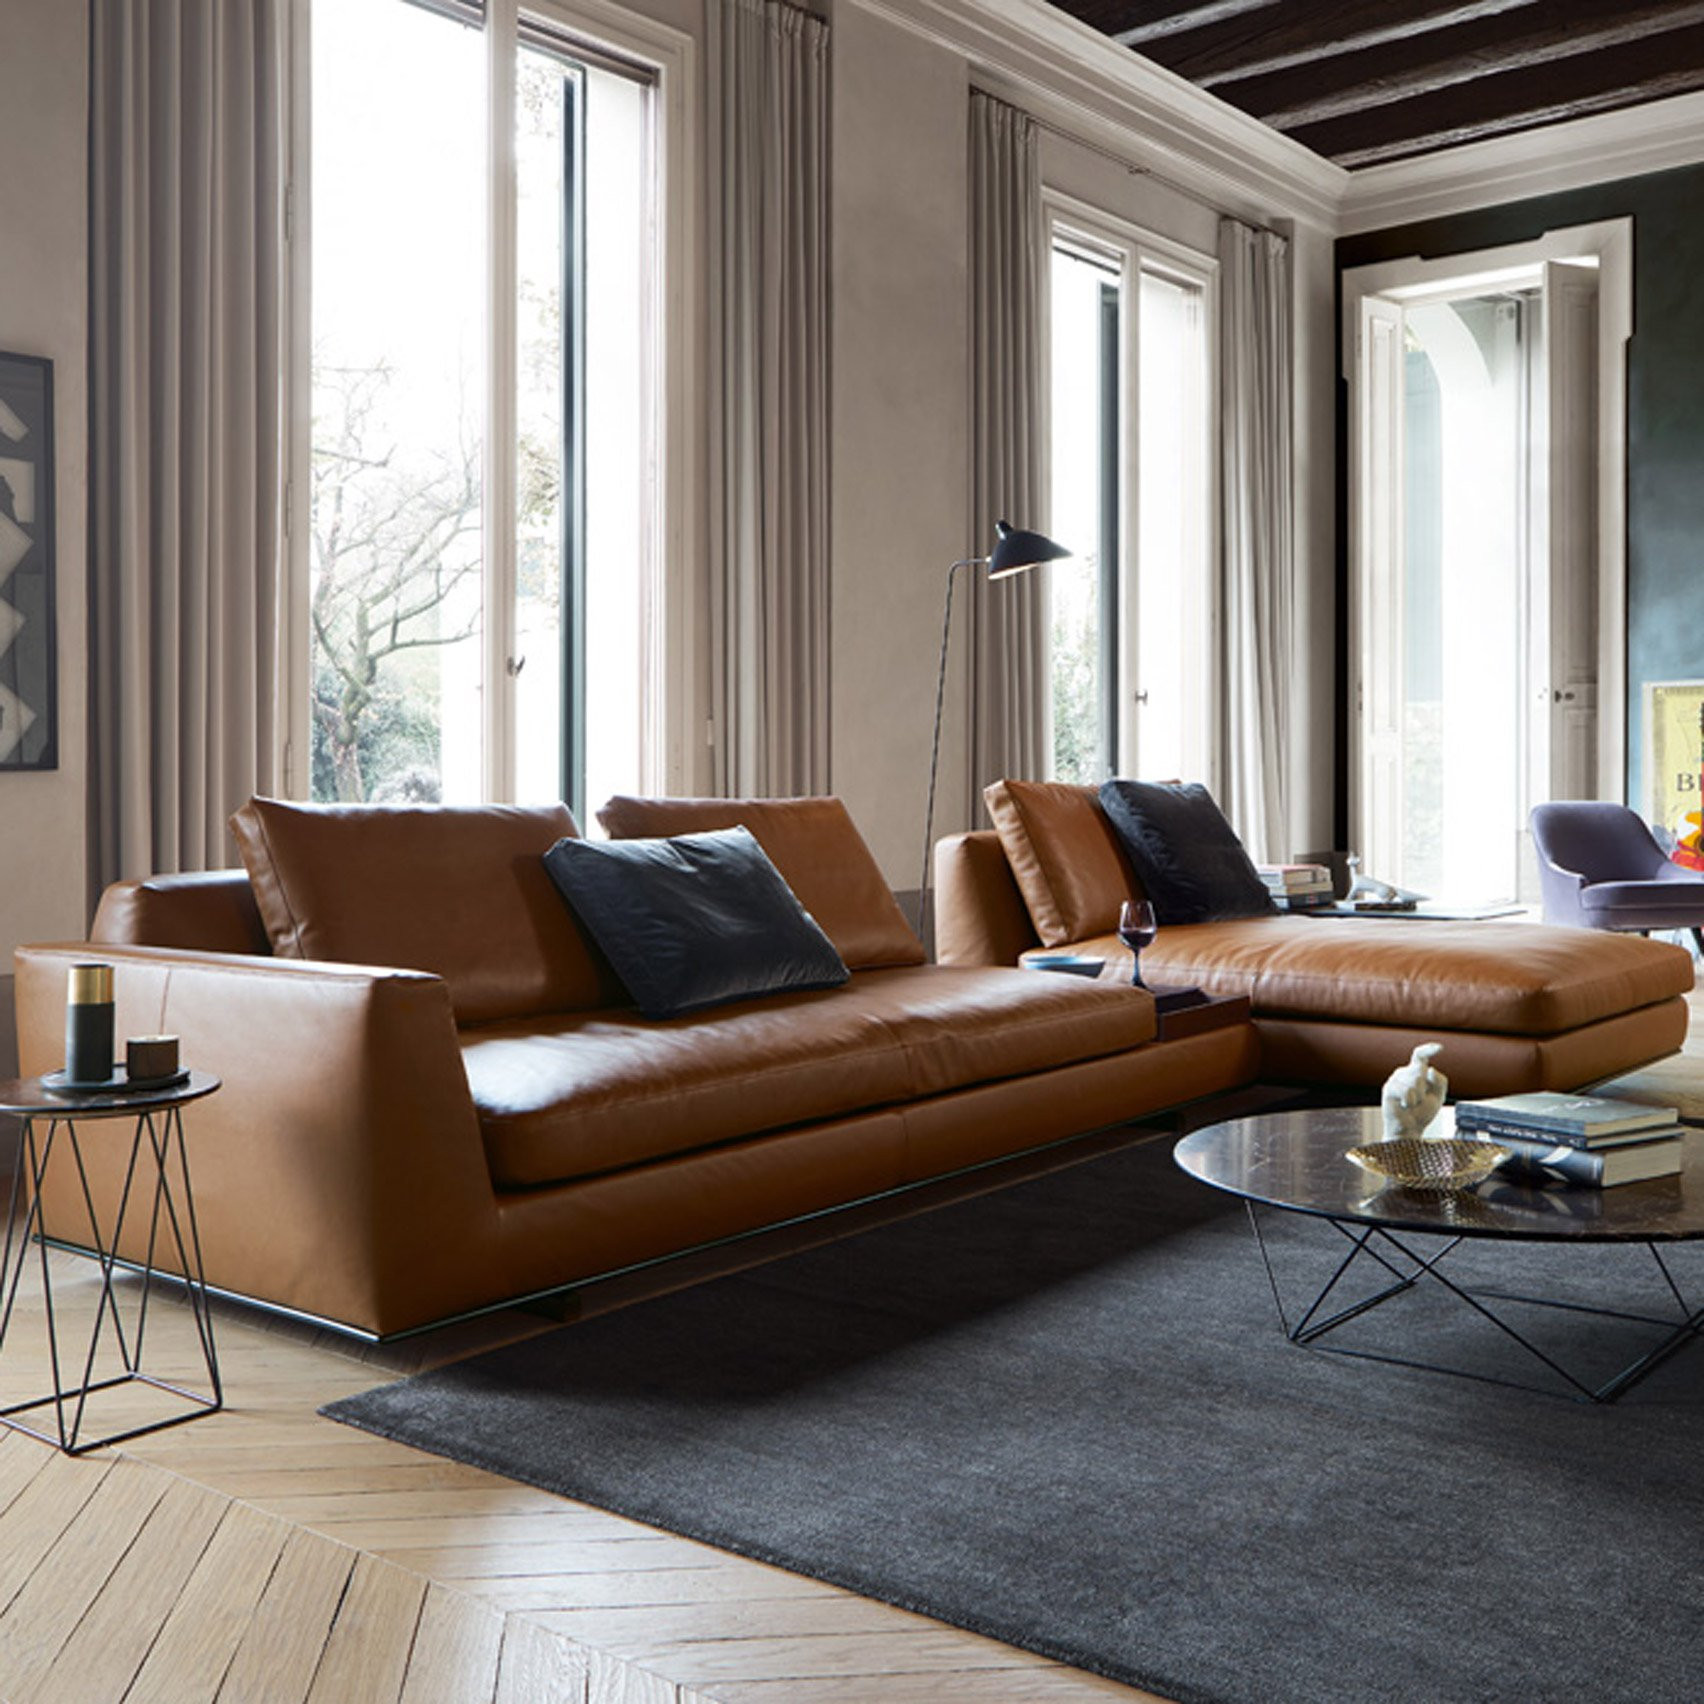 walter knoll walter knoll to present sofa with integrated accessories at milan design week. Black Bedroom Furniture Sets. Home Design Ideas